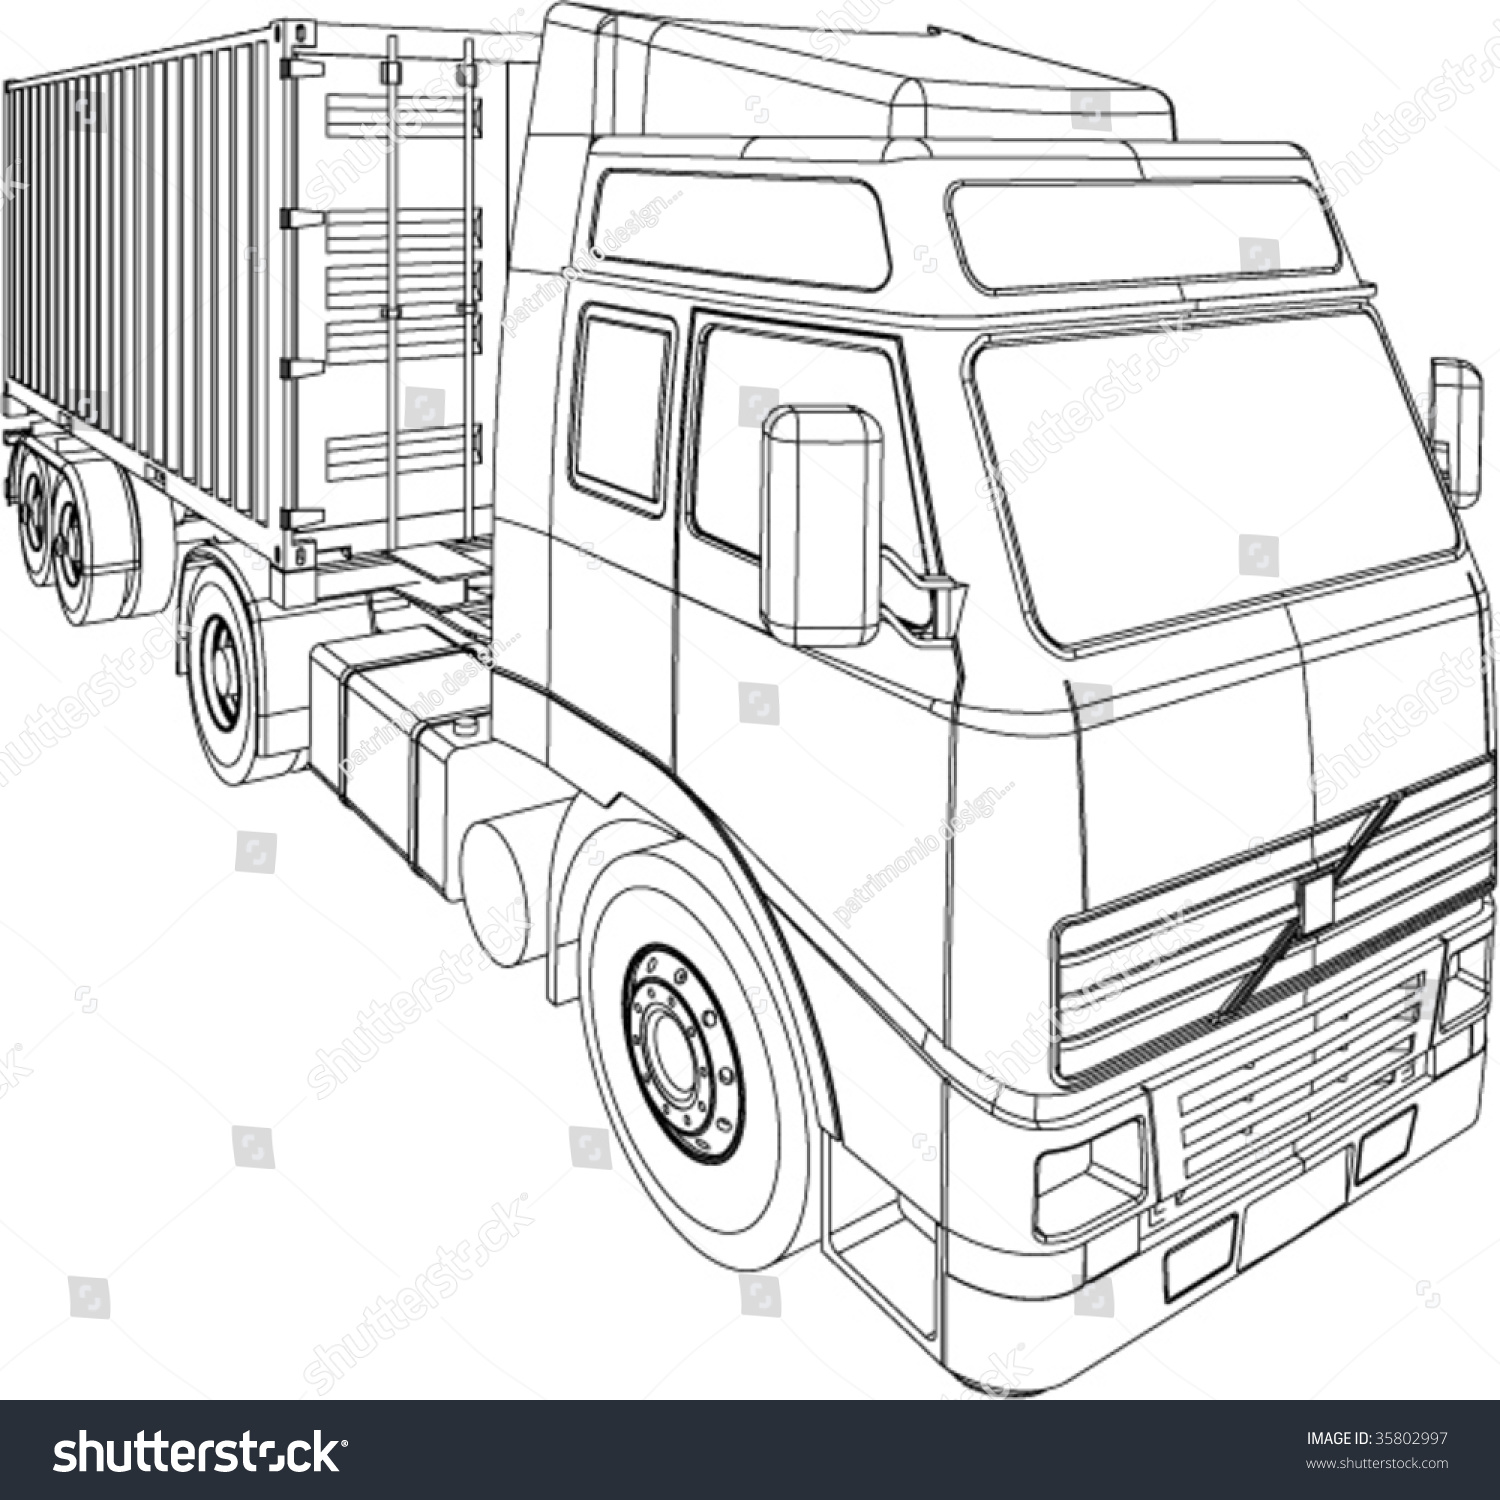 Line Art Truck : Container truck trailer line drawing isolated stock vector